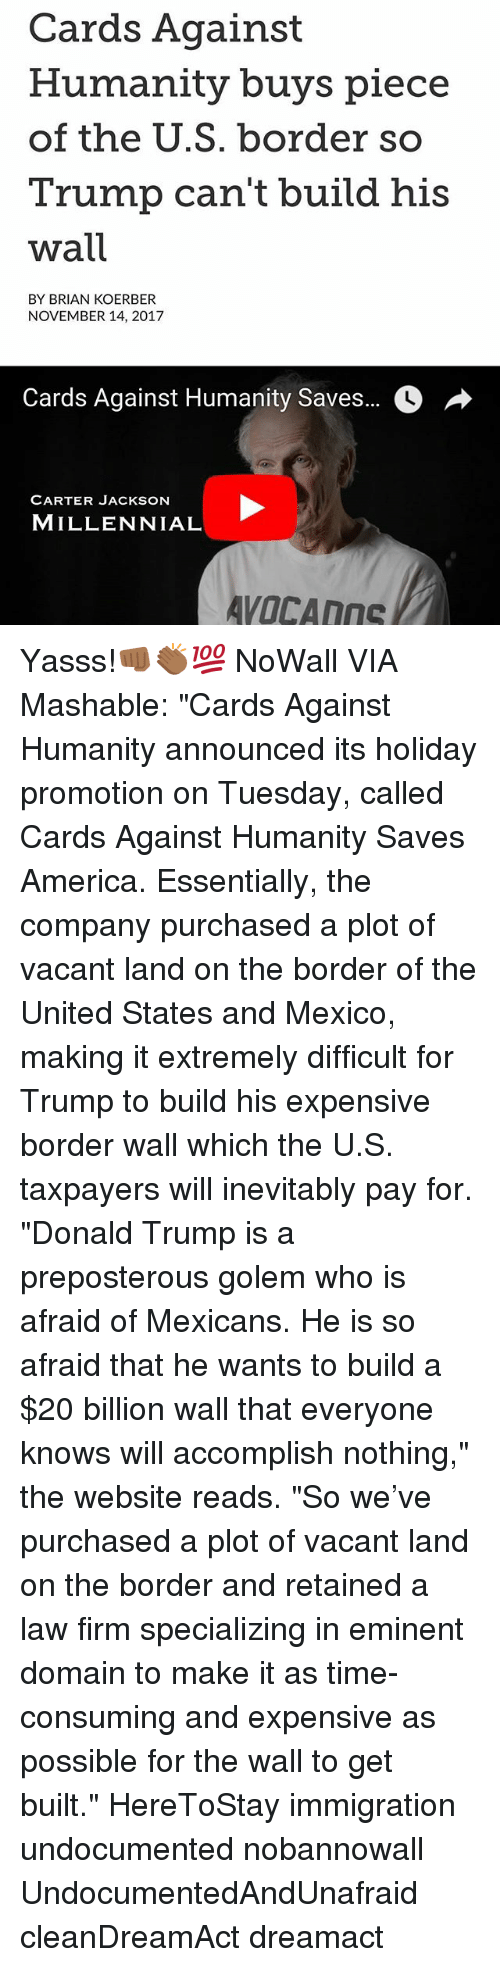 "America, Cards Against Humanity, and Donald Trump: Cards Against  Humanity buys piece  of the U.S. border so  Trump can't build his  wall  BY BRIAN KOERBER  NOVEMBER 14, 2017  Cards Against Humanity Saves..。  CARTER JACKSON  MILLENNIAL Yasss!👊🏾👏🏾💯 NoWall VIA Mashable: ""Cards Against Humanity announced its holiday promotion on Tuesday, called Cards Against Humanity Saves America. Essentially, the company purchased a plot of vacant land on the border of the United States and Mexico, making it extremely difficult for Trump to build his expensive border wall which the U.S. taxpayers will inevitably pay for. ""Donald Trump is a preposterous golem who is afraid of Mexicans. He is so afraid that he wants to build a $20 billion wall that everyone knows will accomplish nothing,"" the website reads. ""So we've purchased a plot of vacant land on the border and retained a law firm specializing in eminent domain to make it as time-consuming and expensive as possible for the wall to get built."" HereToStay immigration undocumented nobannowall UndocumentedAndUnafraid cleanDreamAct dreamact"